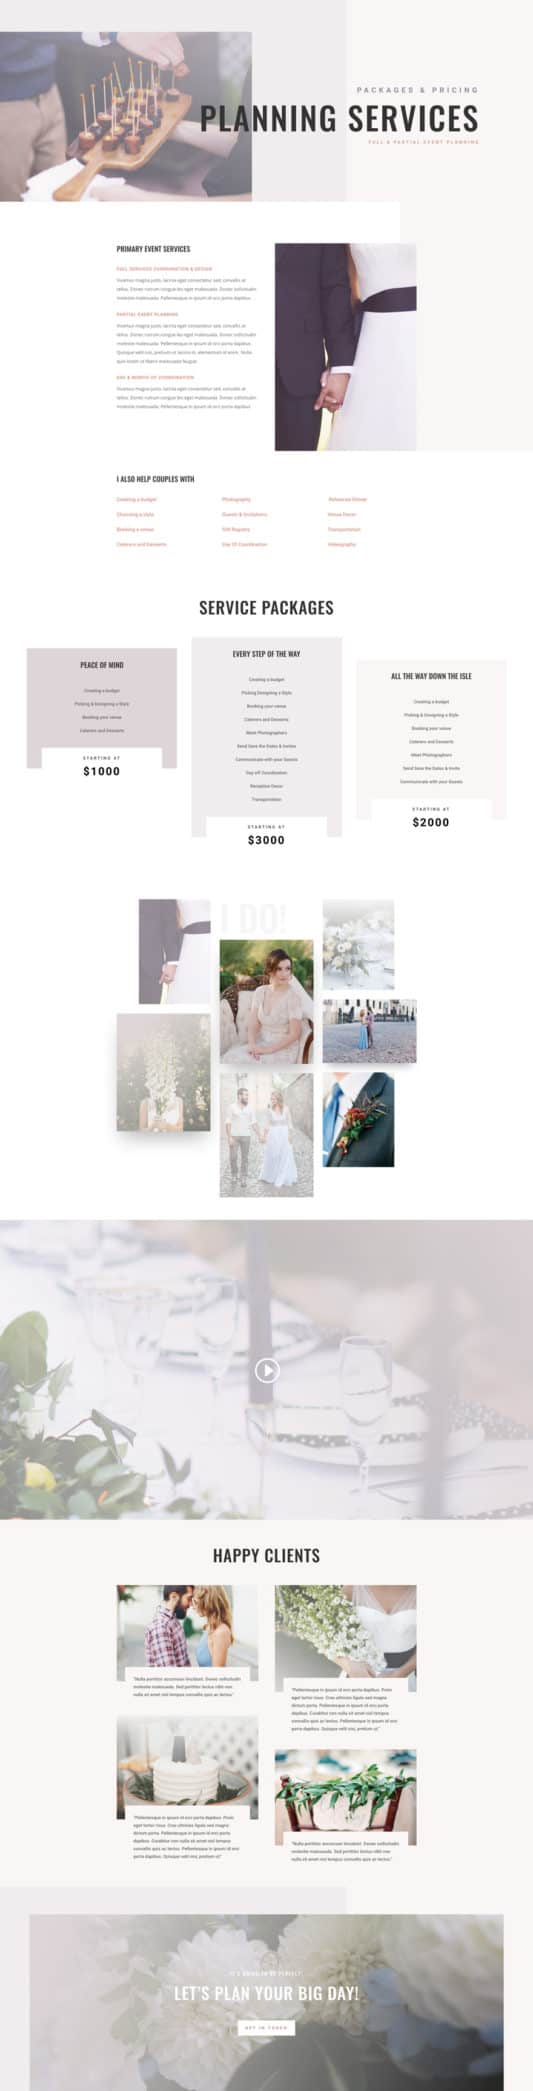 Wedding Planner Web Design 7